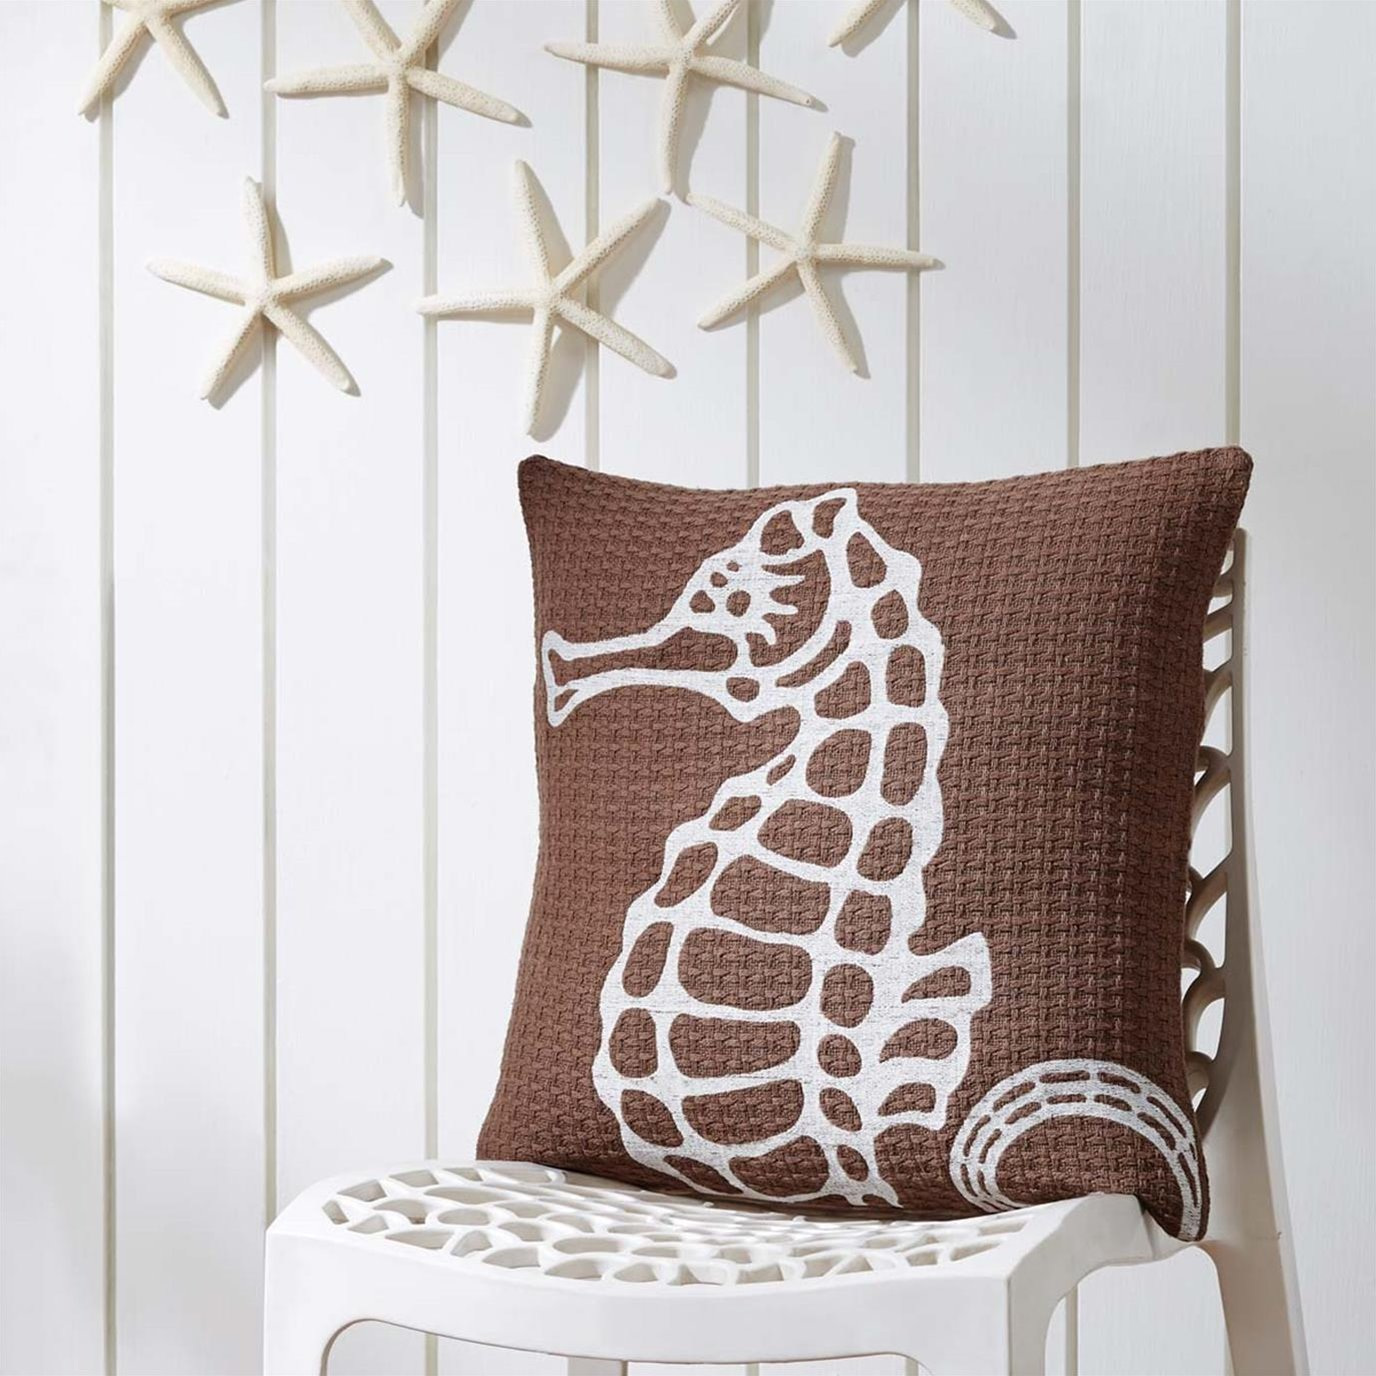 Embroidered Seahorse Pillow 18x18